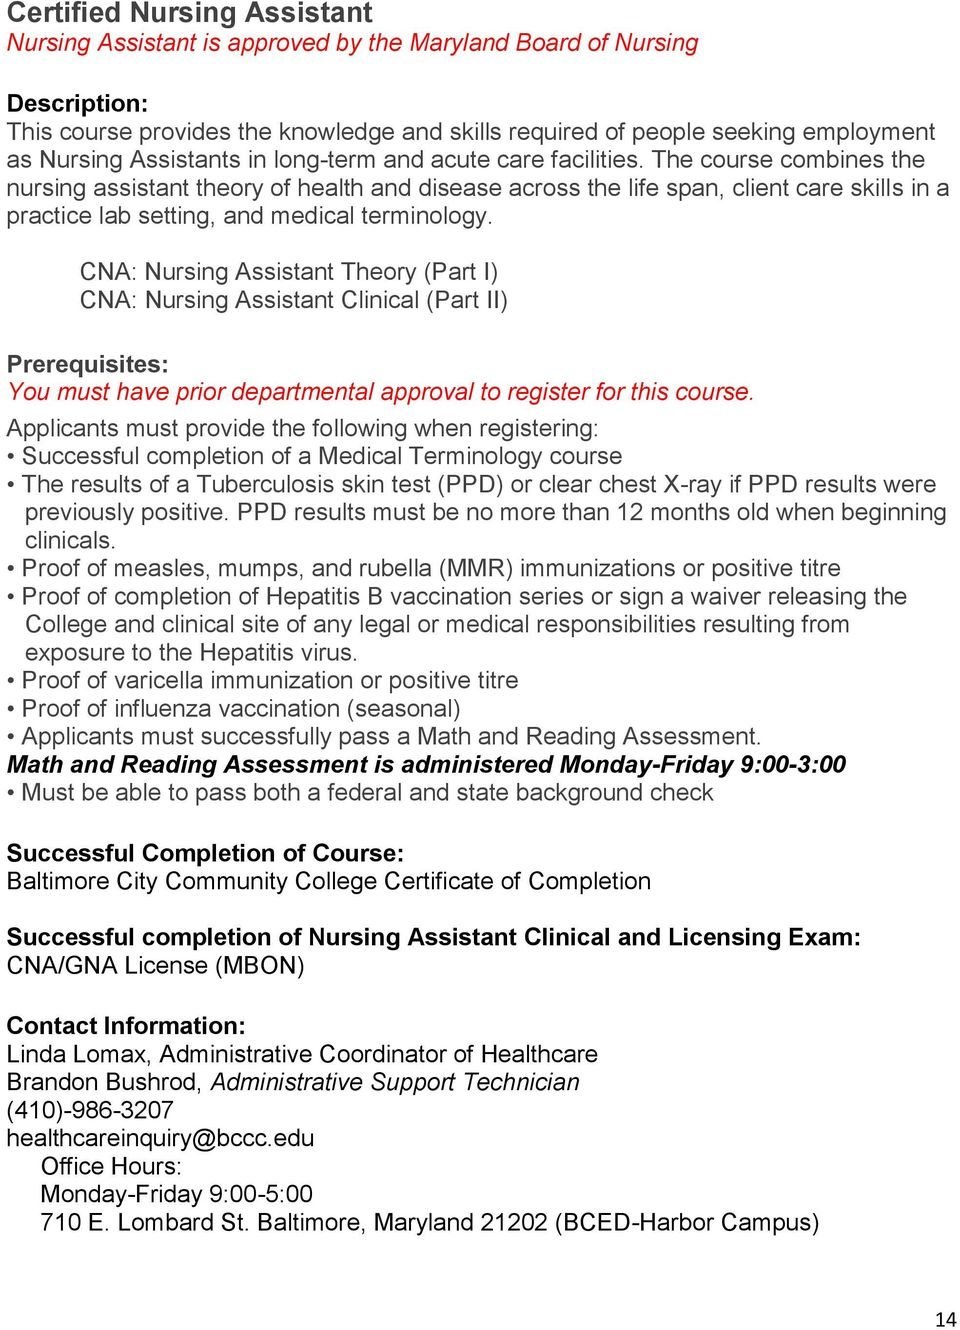 CNA: Nursing Assistant Theory (Part I) CNA: Nursing Assistant Clinical (Part II) Prerequisites: Applicants must provide the following when registering: Successful completion of a Medical Terminology